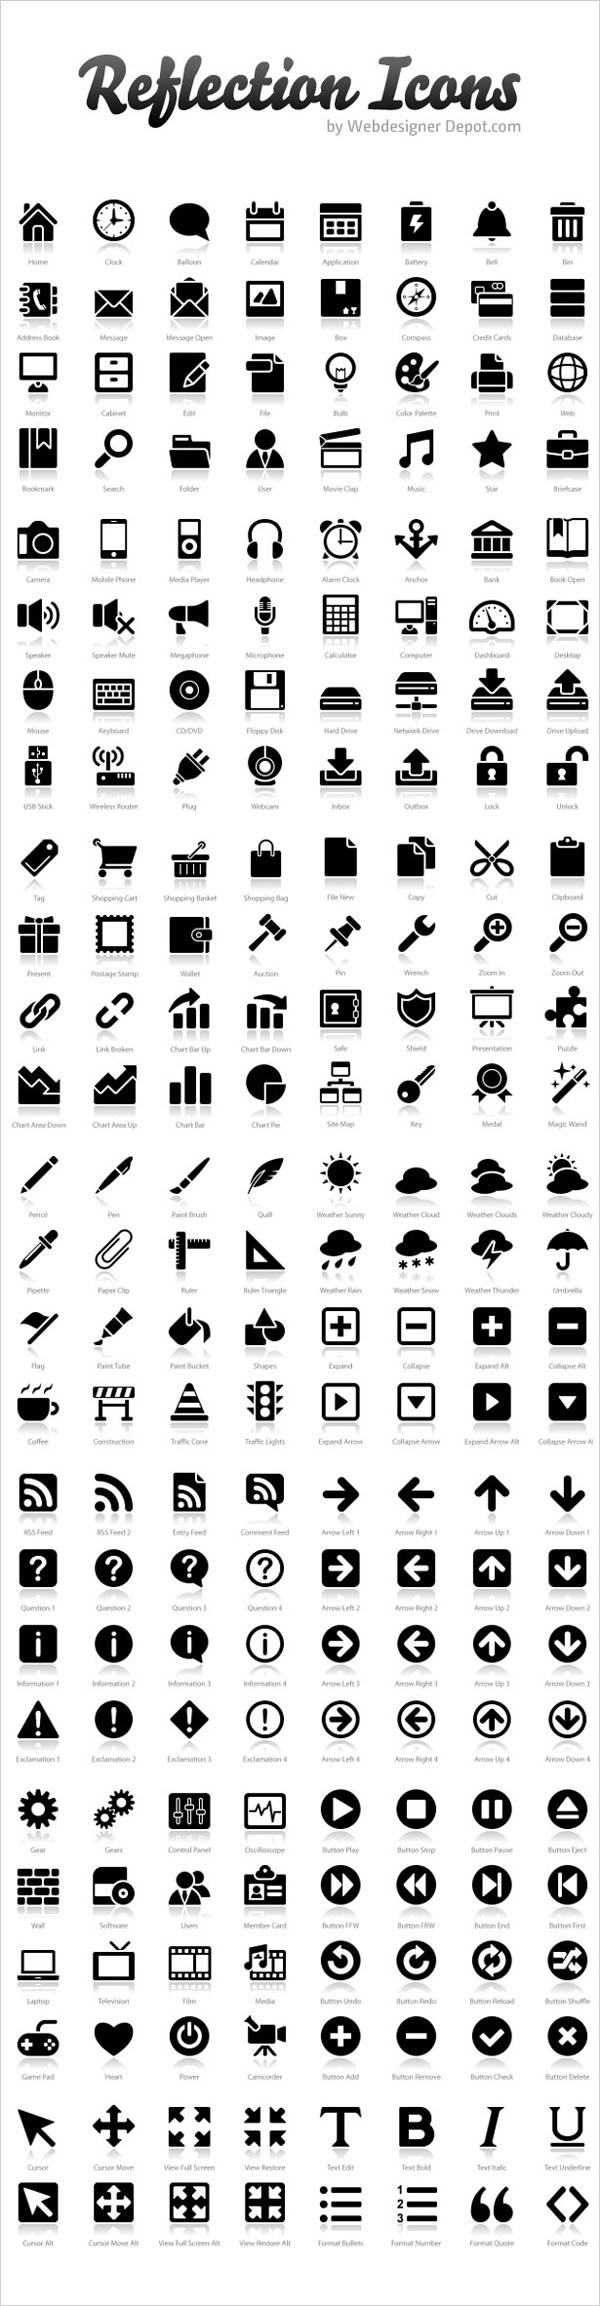 200+ Free Exclusive Reflection Icons